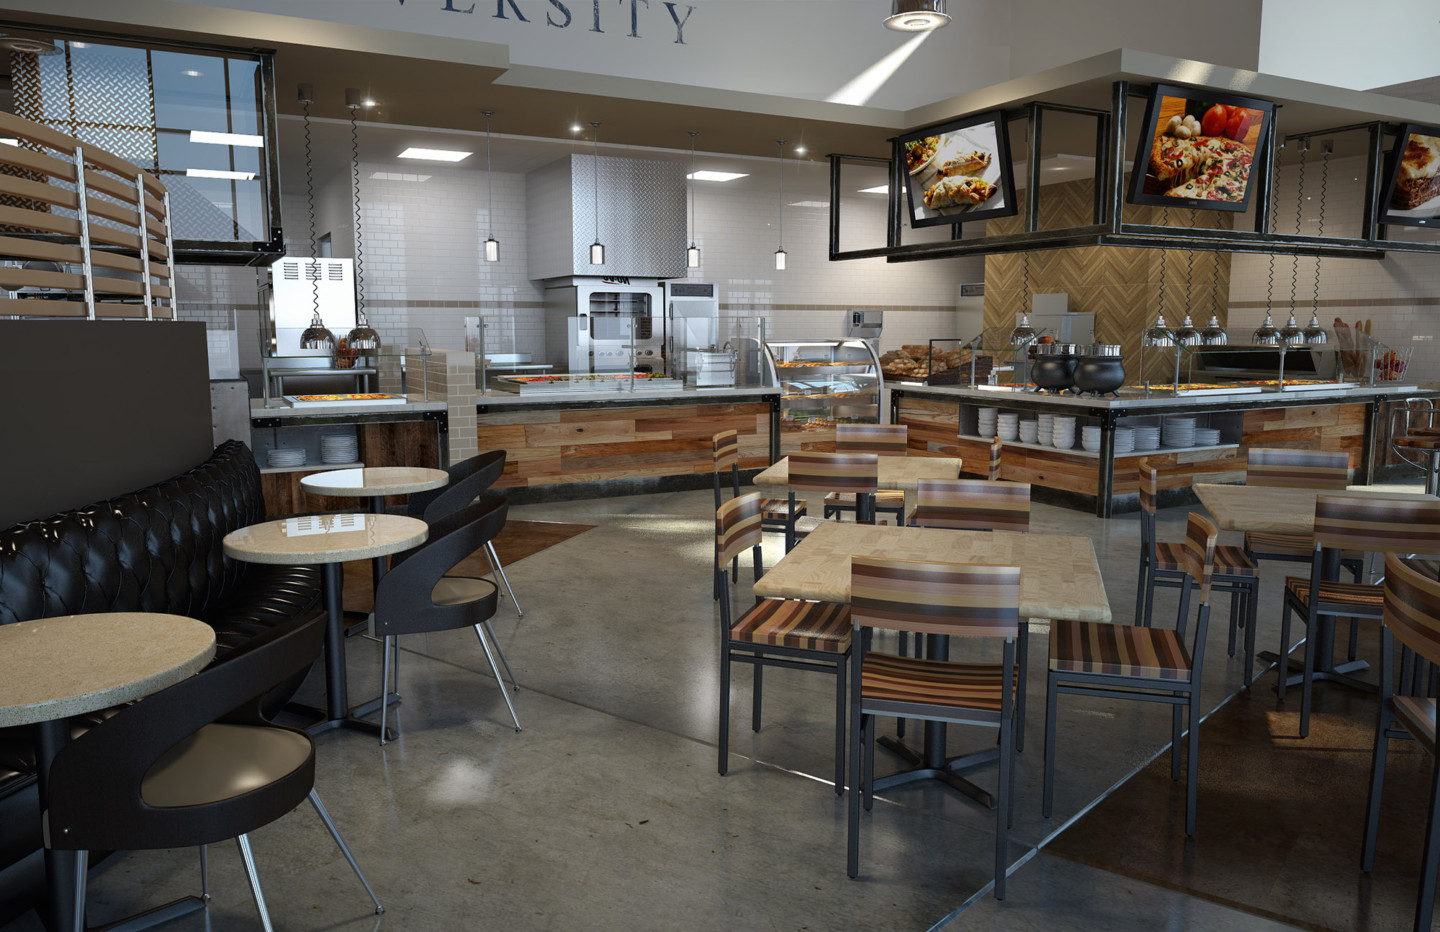 AUBURN WELLNESS KITCHEN ATHLETIC DINING VIEW 02